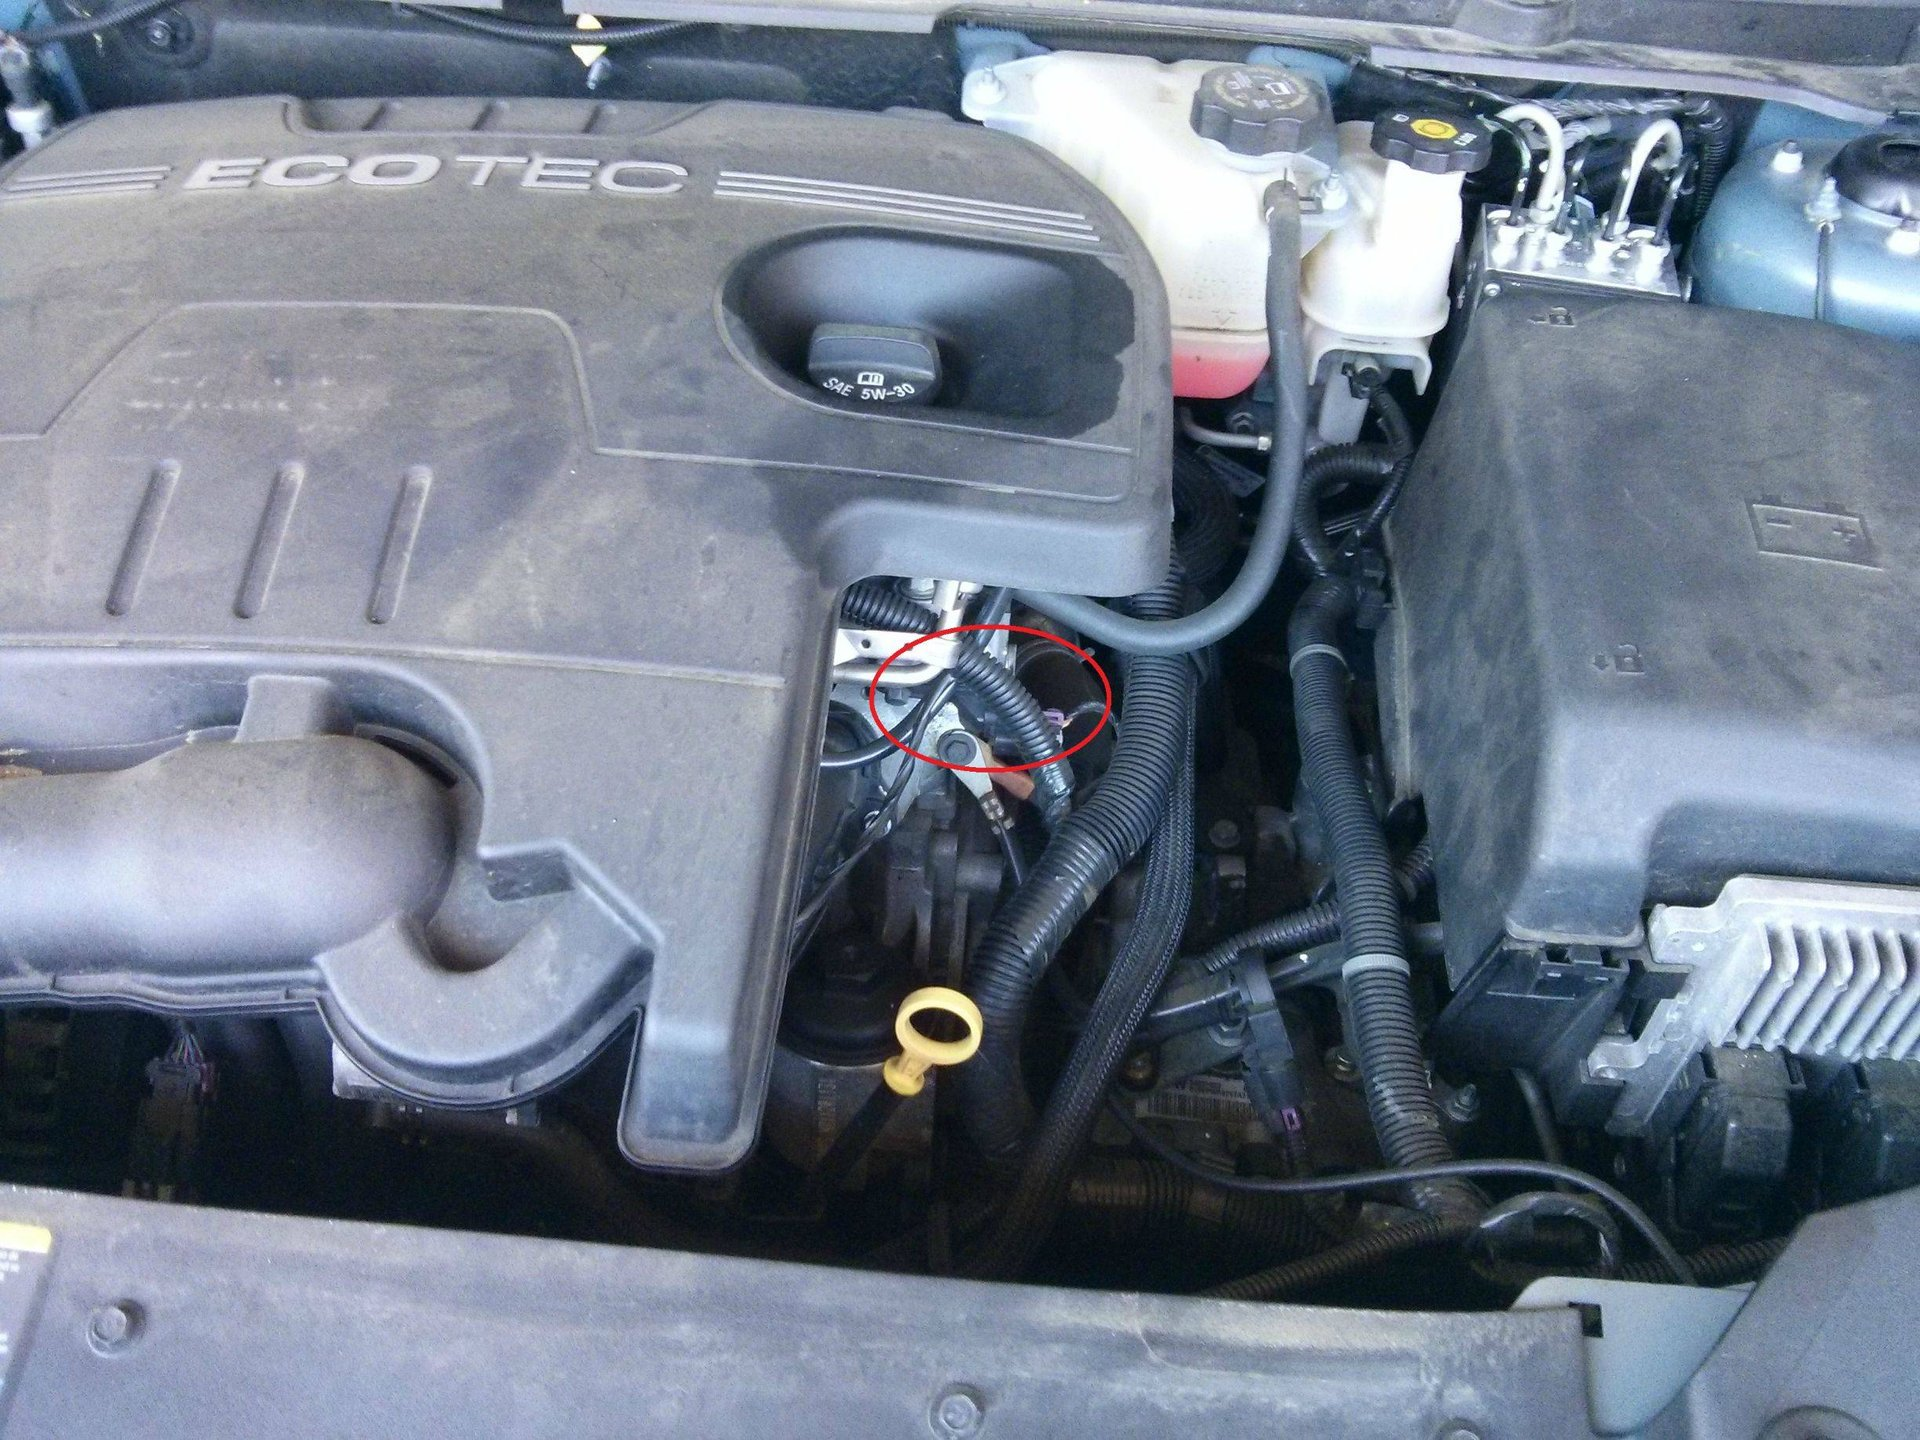 Service Esc Chevy Malibu >> P0010 Code Sensor Location Chevrolet Malibu Forums